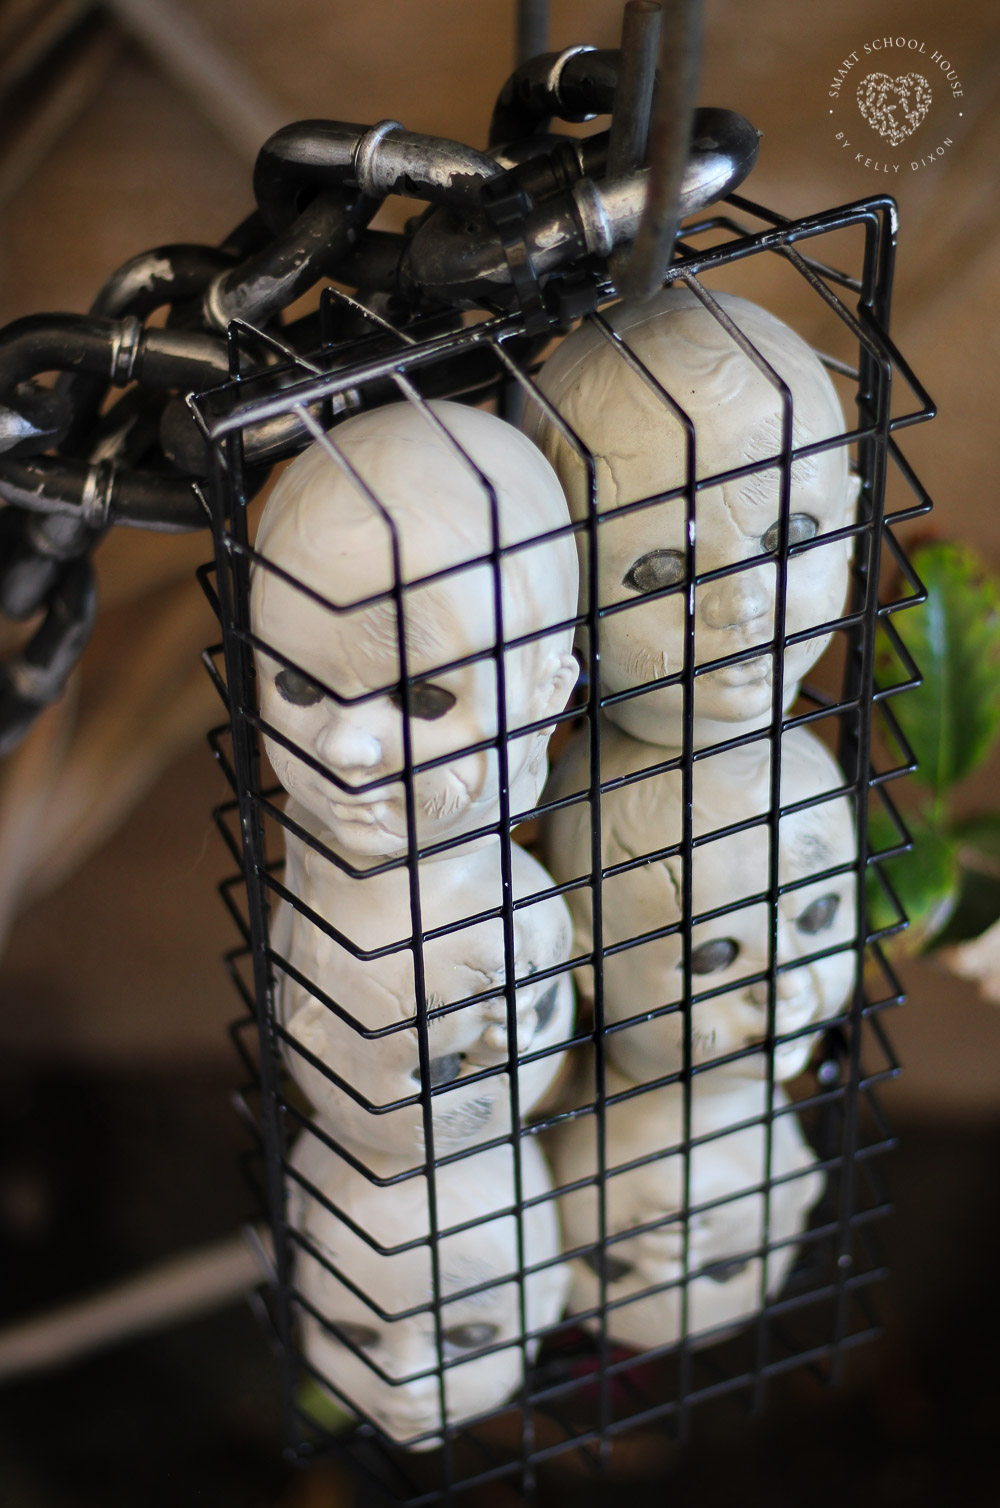 Hanging doll heads in a cage for Halloween!